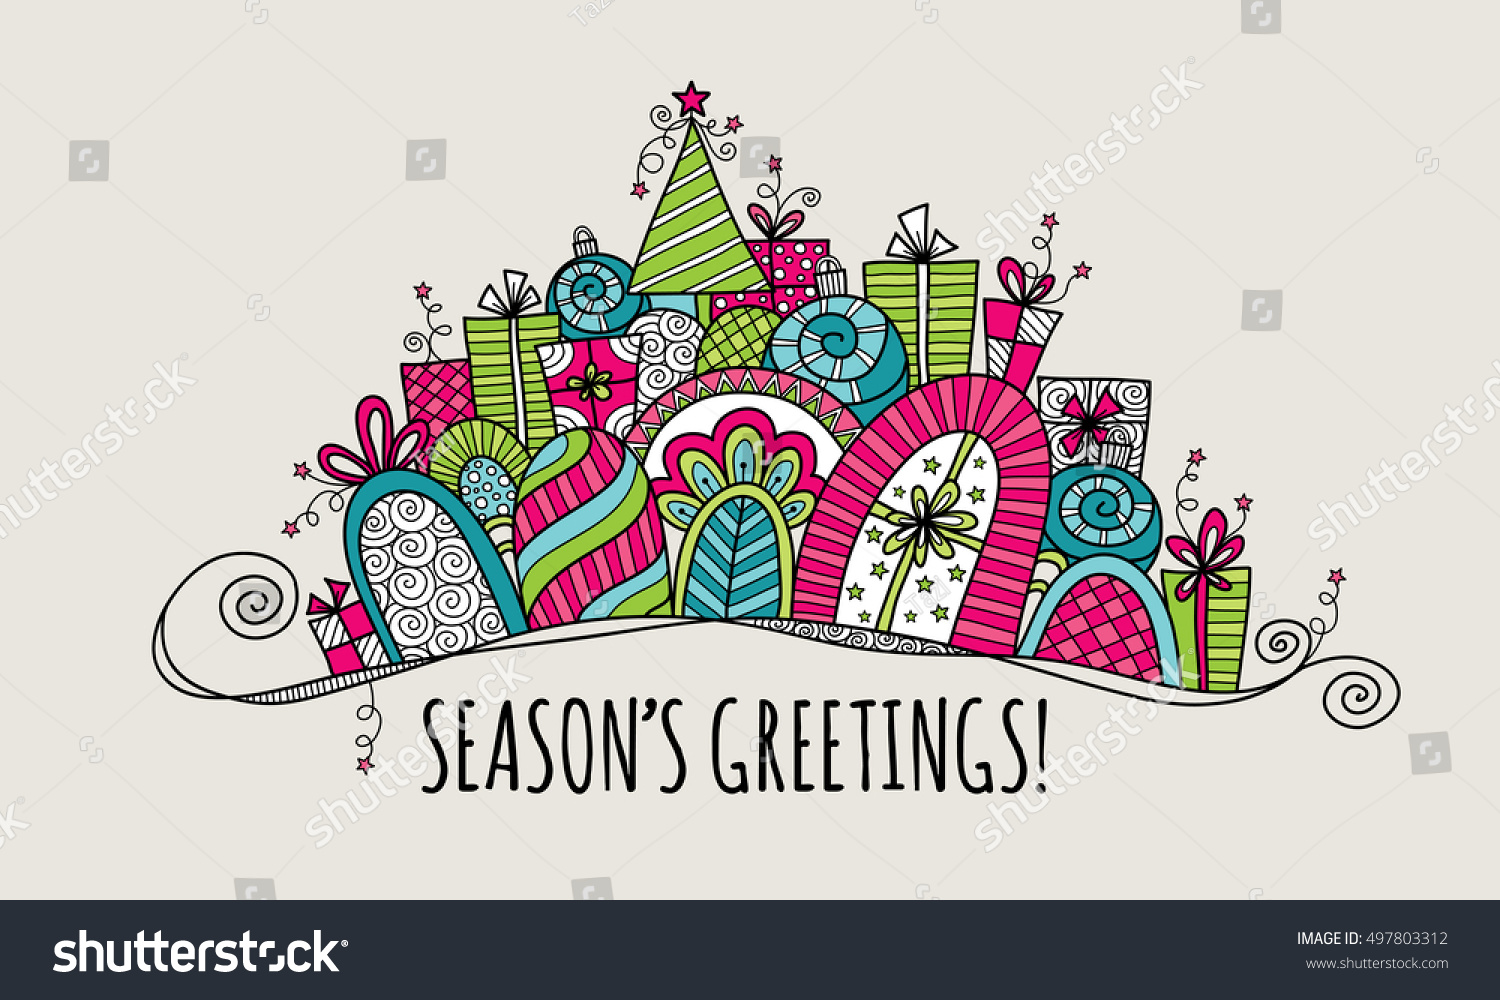 Seasons greetings modern christmas doodle vector stock vector seasons greetings modern christmas doodle vector illustration with the words seasons greetings under a banner of kristyandbryce Choice Image